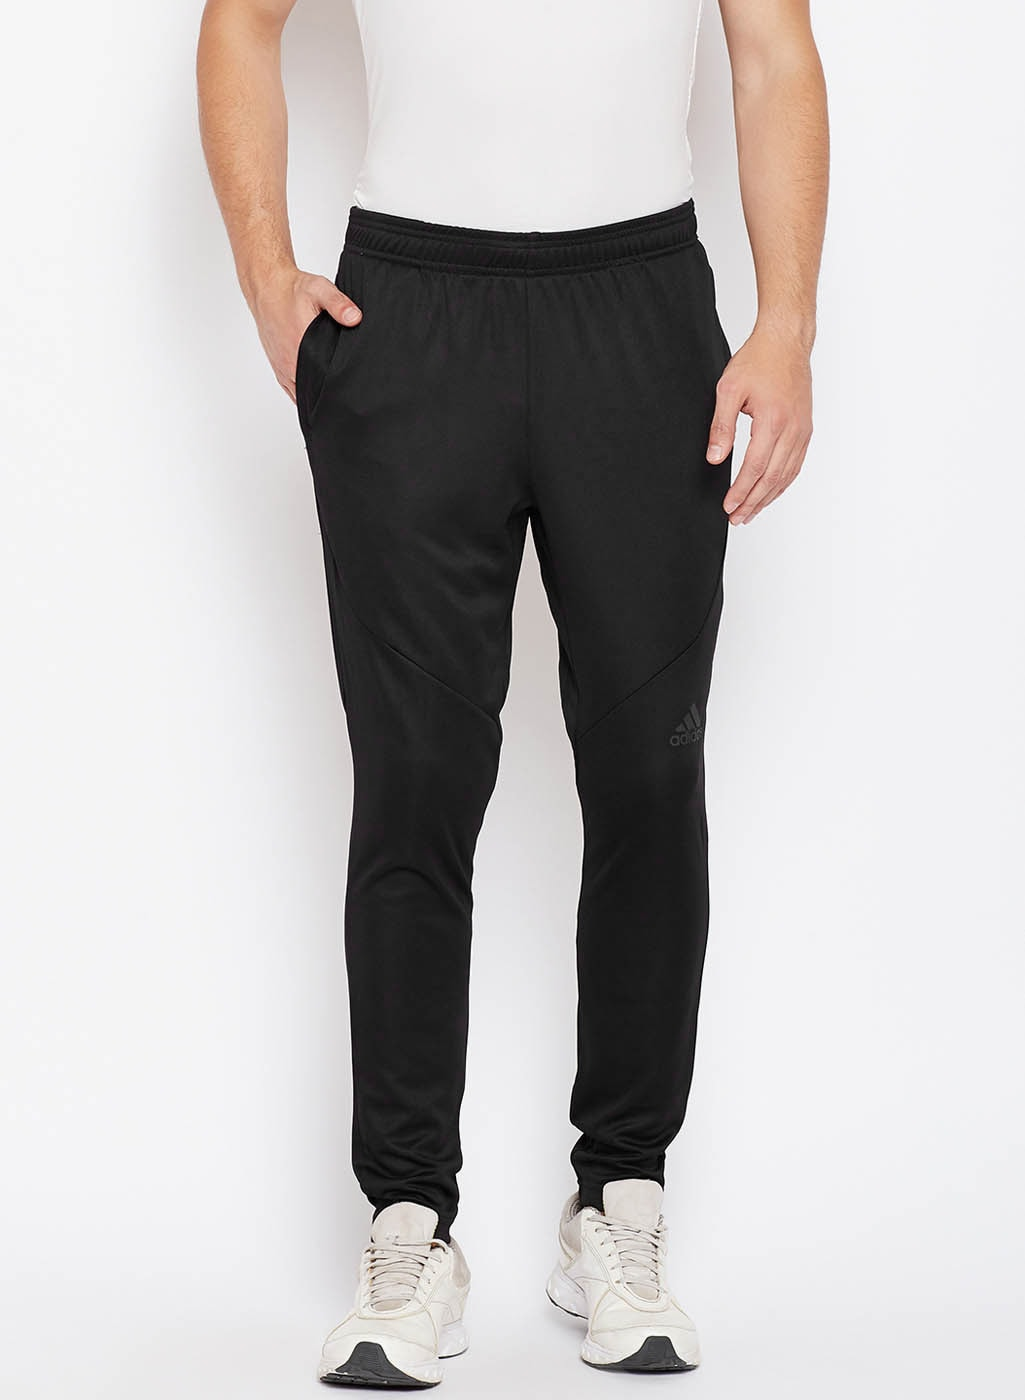 e9f9fa32582a adidas Track Pants - Buy Track Pants from adidas Online